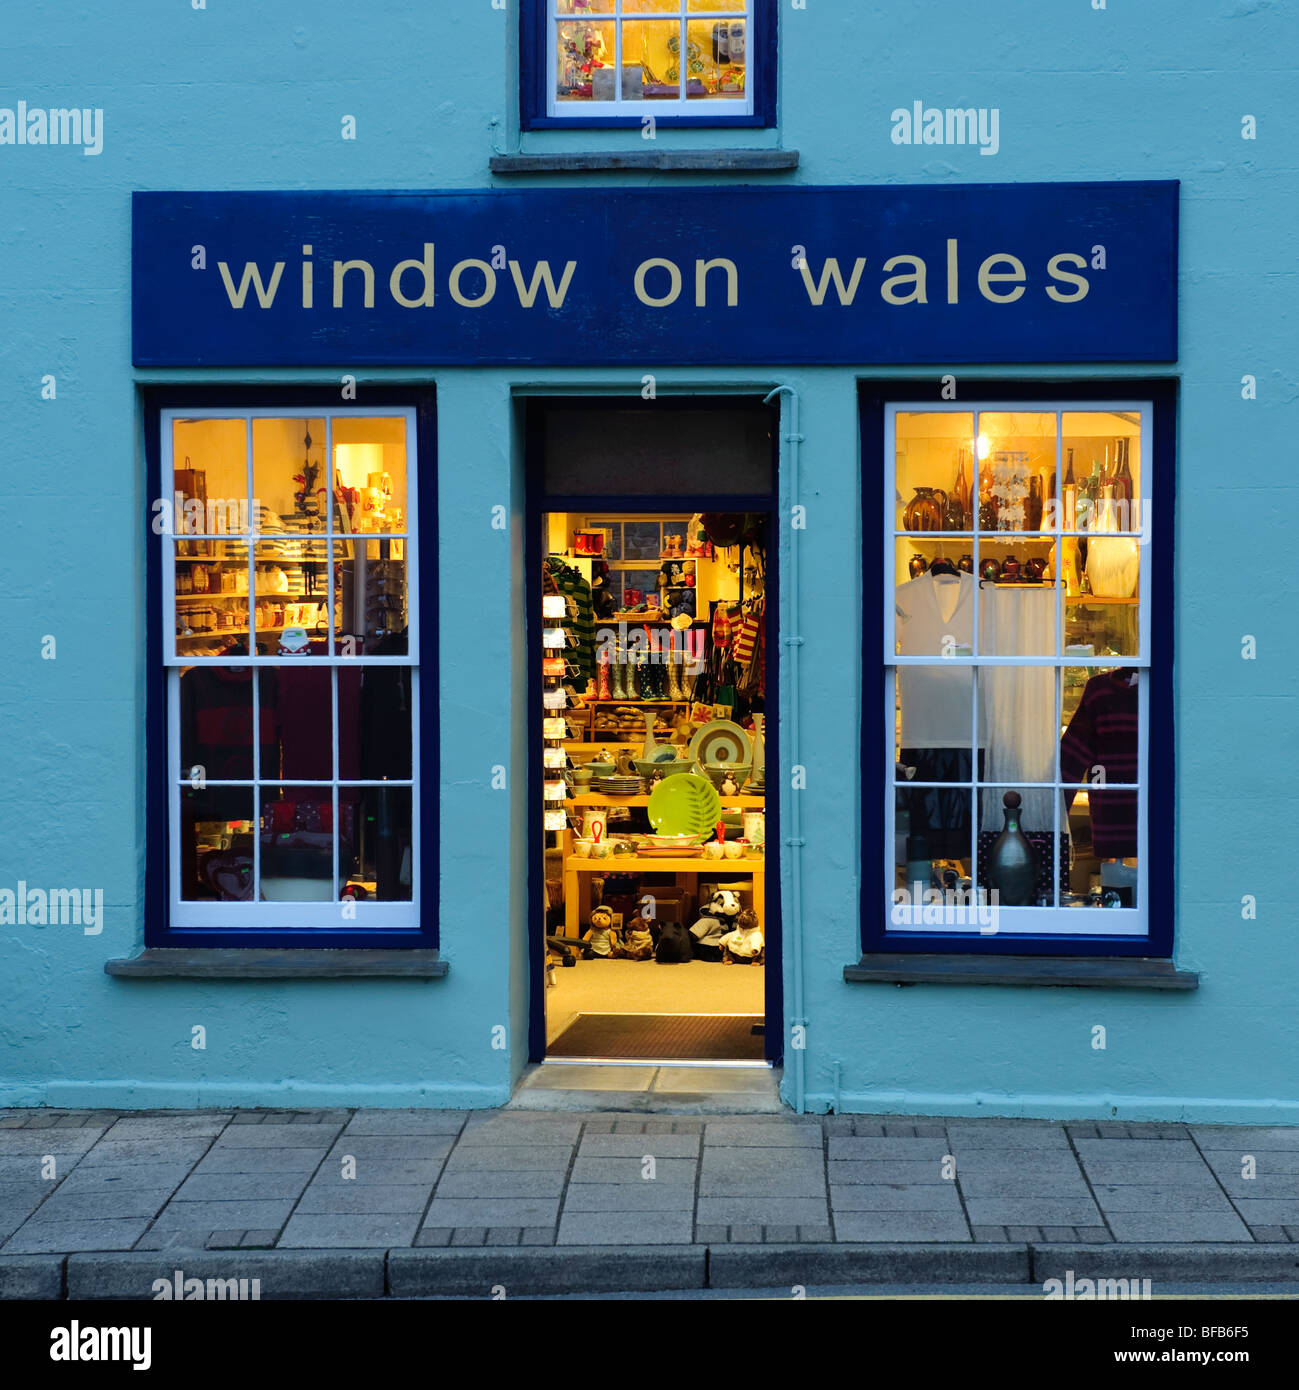 Window on Wales art and crafts gallery  and shop in St Davids city, Pembrokeshire wales UK, early evening - Stock Image